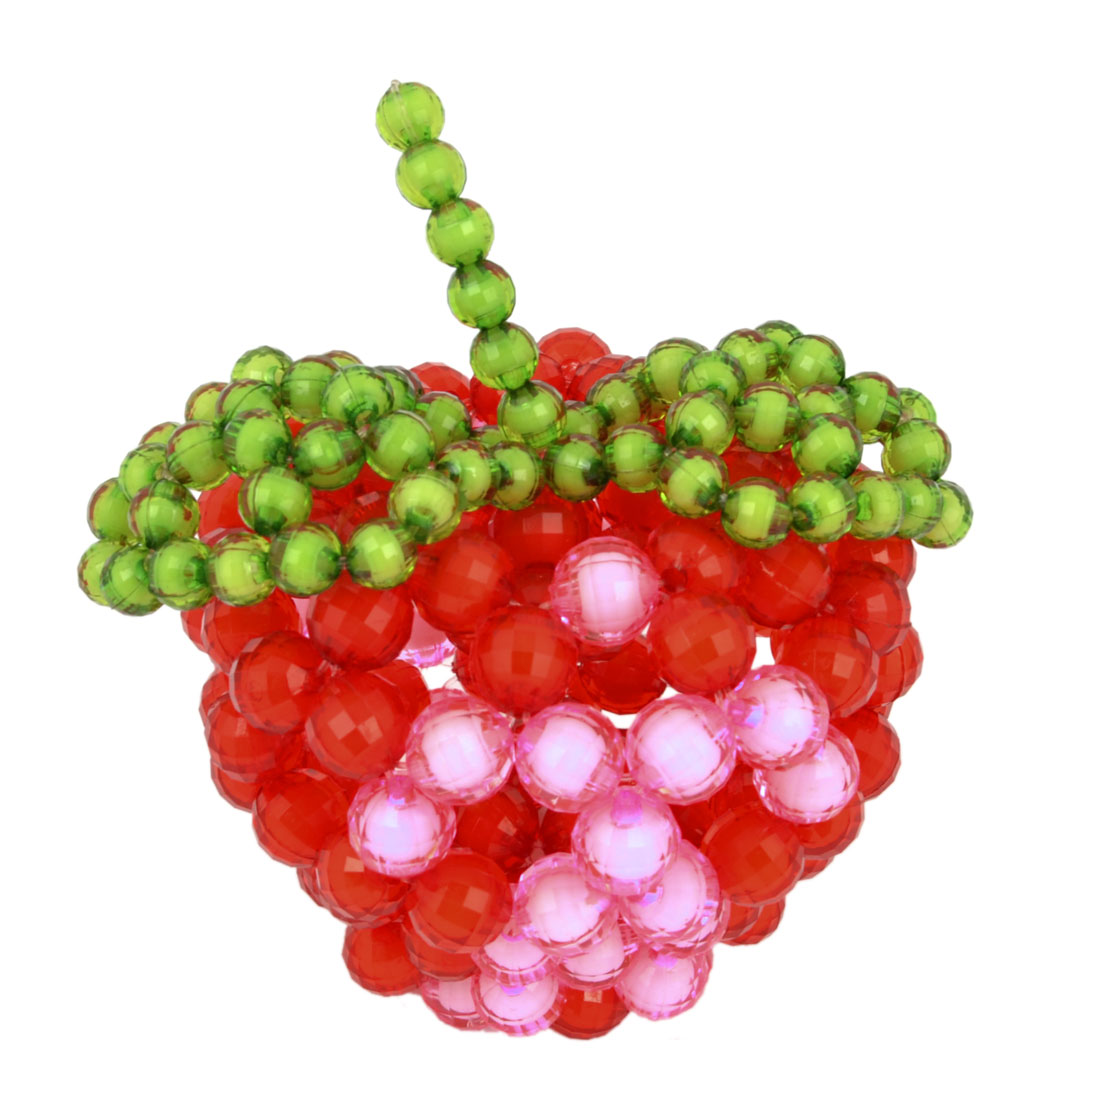 Manmade Red Crafted Fruit Apple Design Faux Crystal Beads Desk Table Decoration